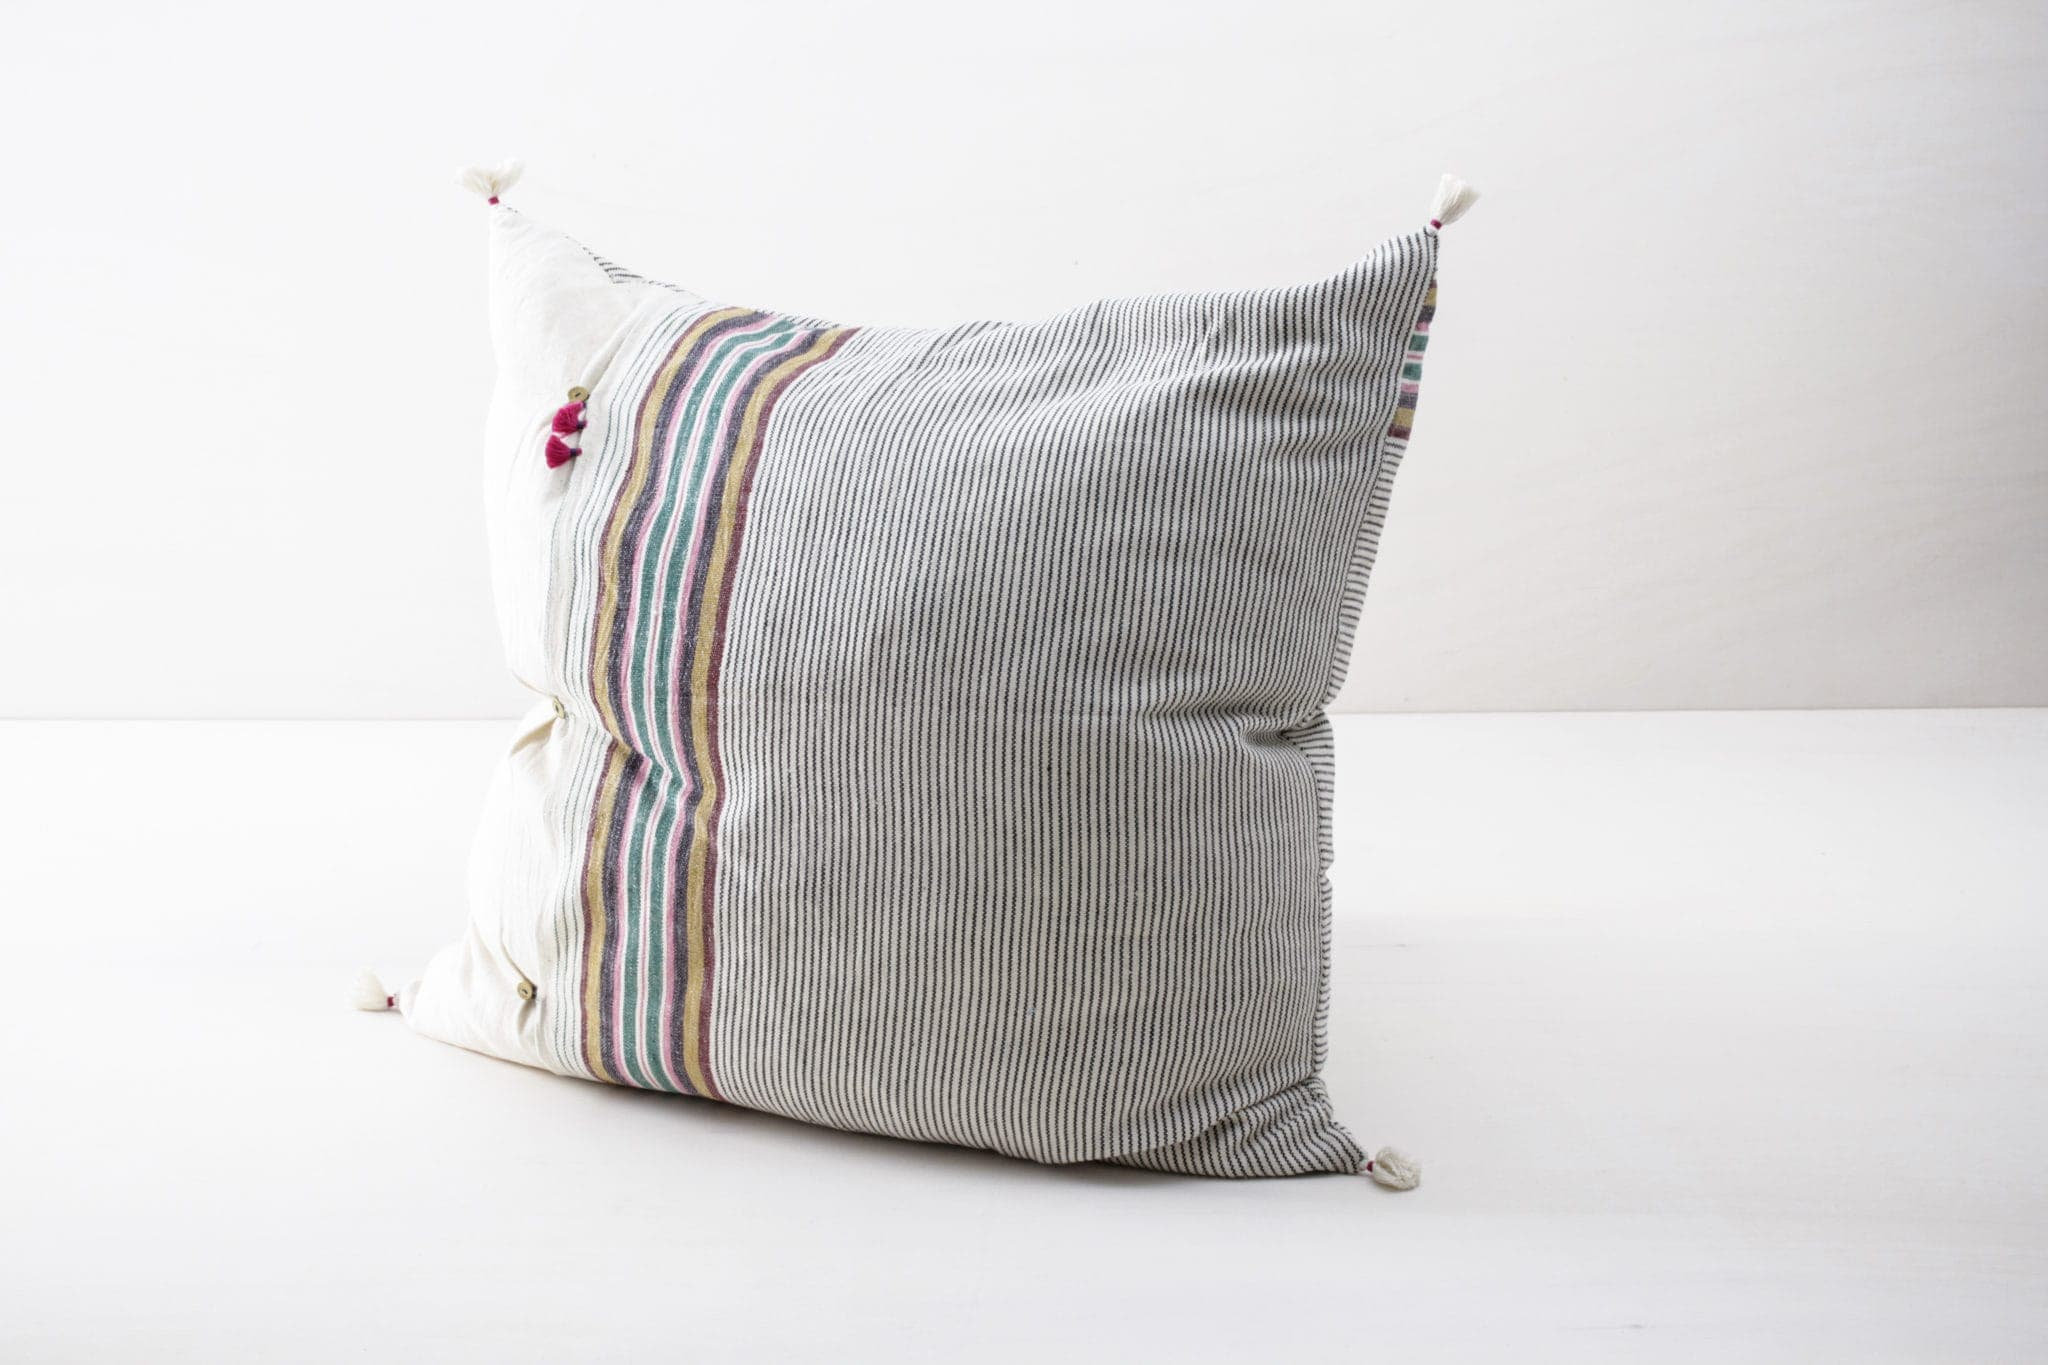 Pillow Orlanda 60x60 | Soft, colorful and made of organic Kala cotton. These pillows are super cosy. | gotvintage Rental & Event Design